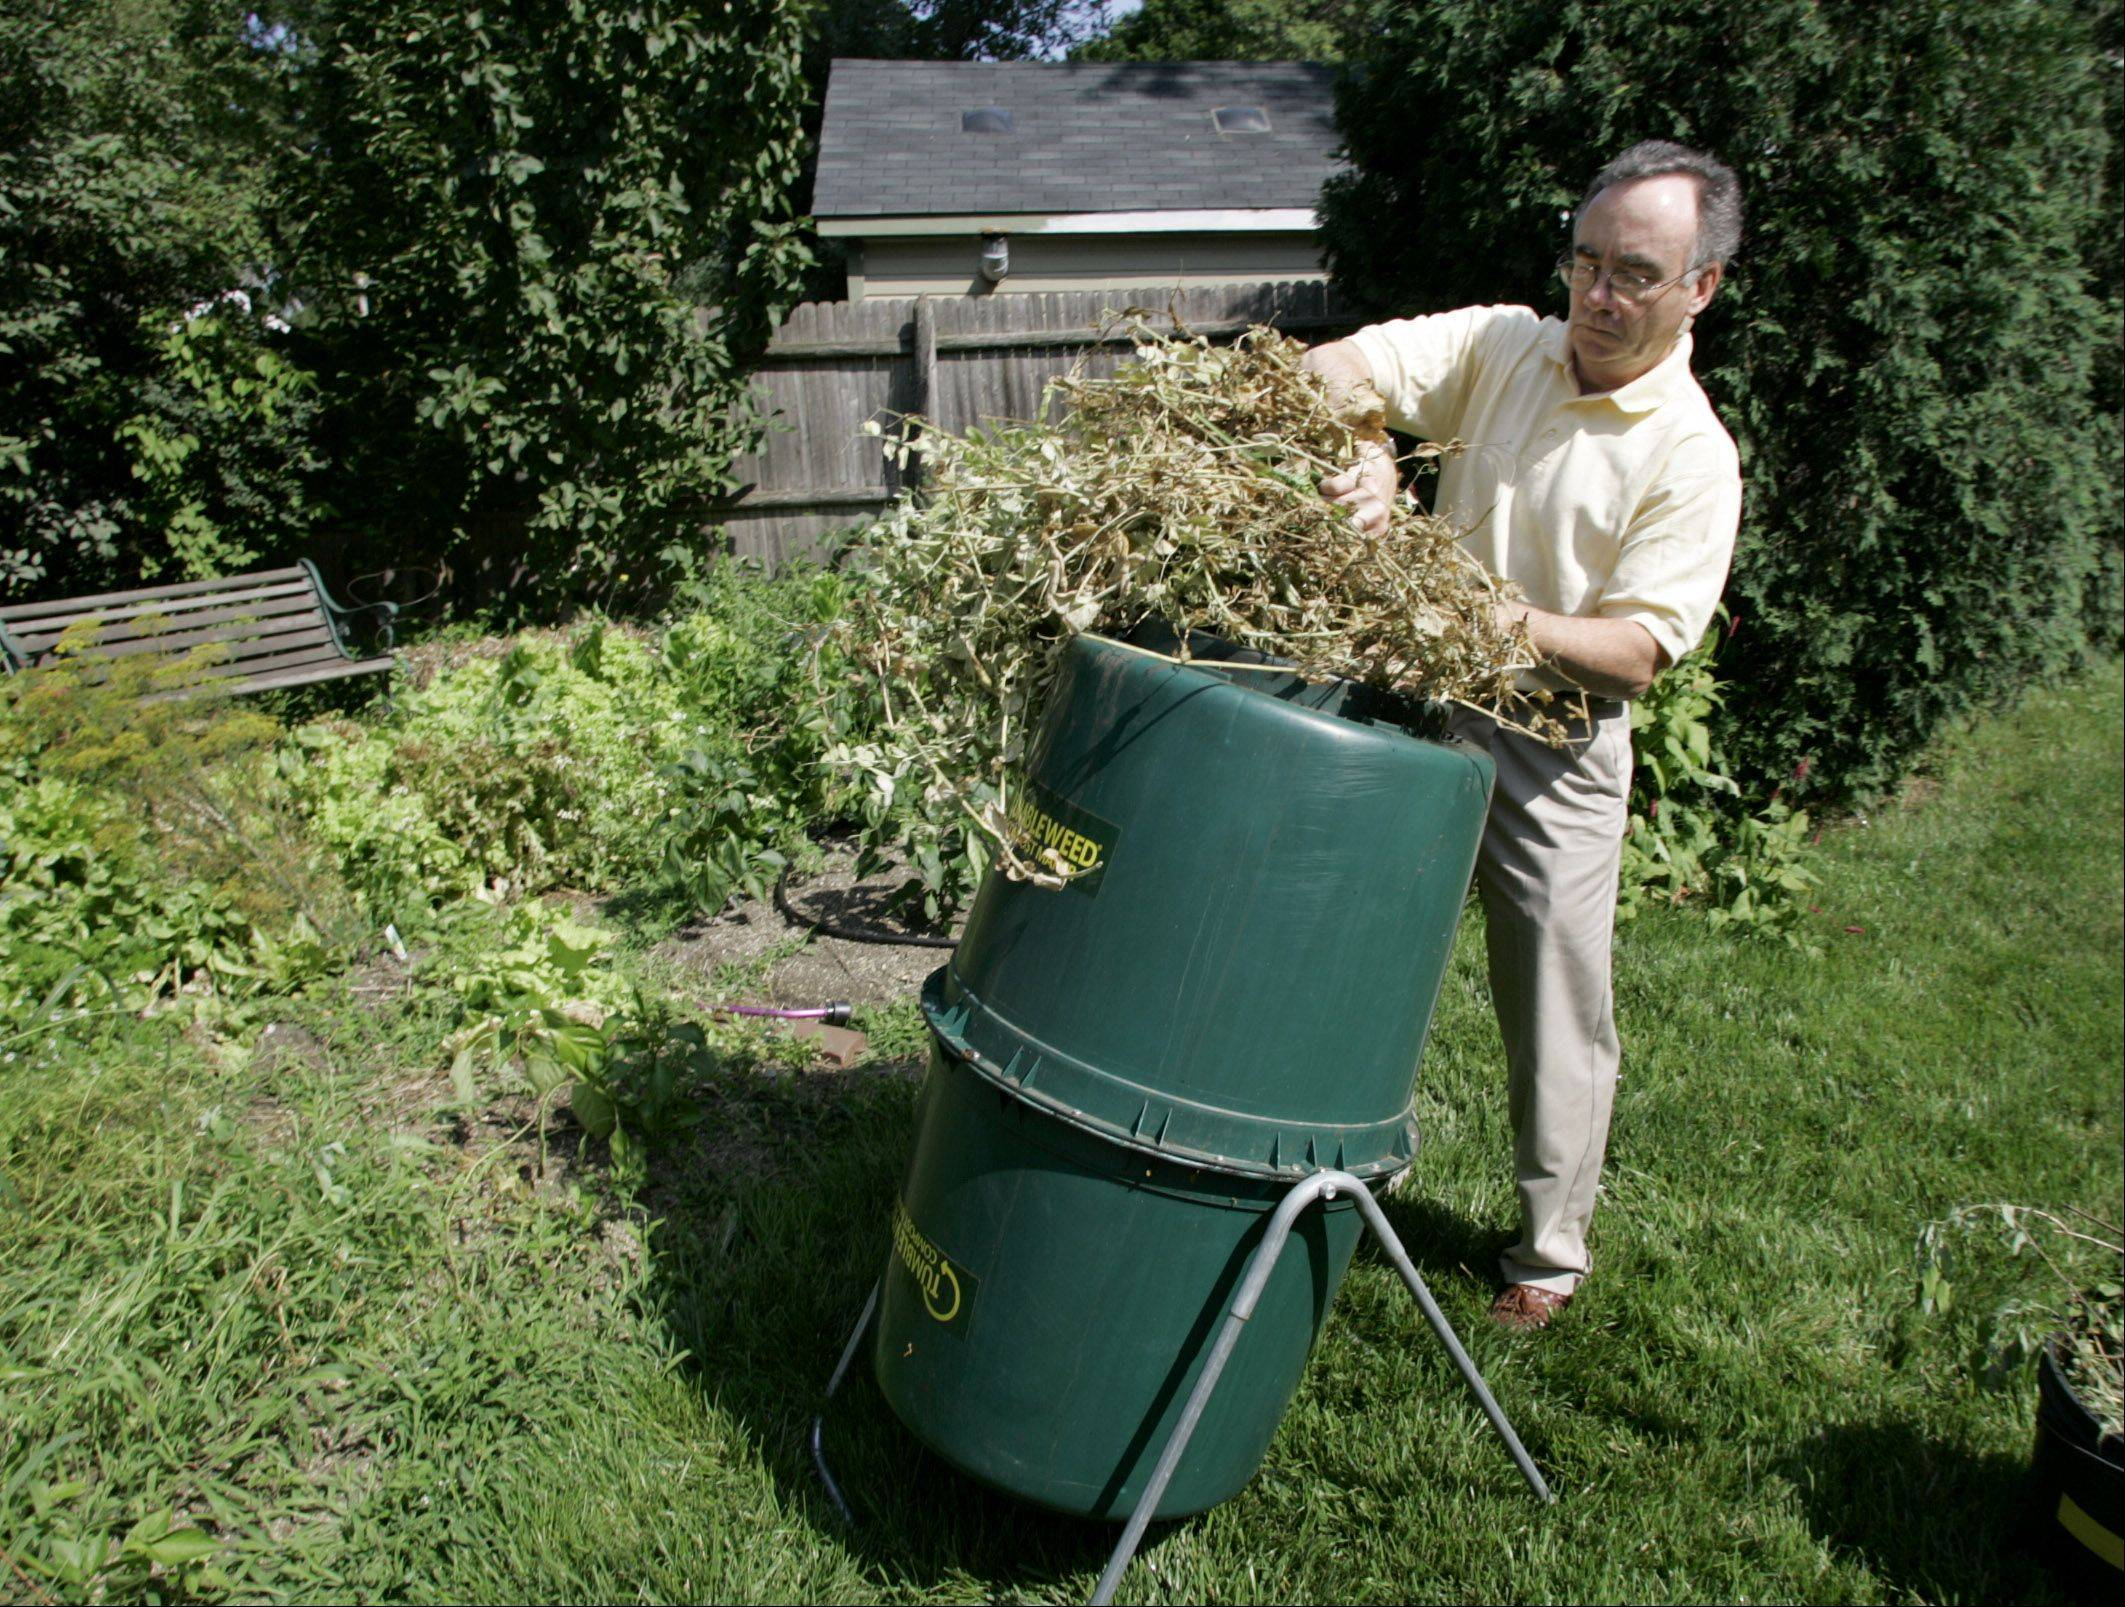 Visitors to the Green Fair on Saturday at Cantigny can learn how to get started composting in their backyard. The fair, sponsored in conjunction with SCARCE, offers advice on being more environmentally friendly at home.